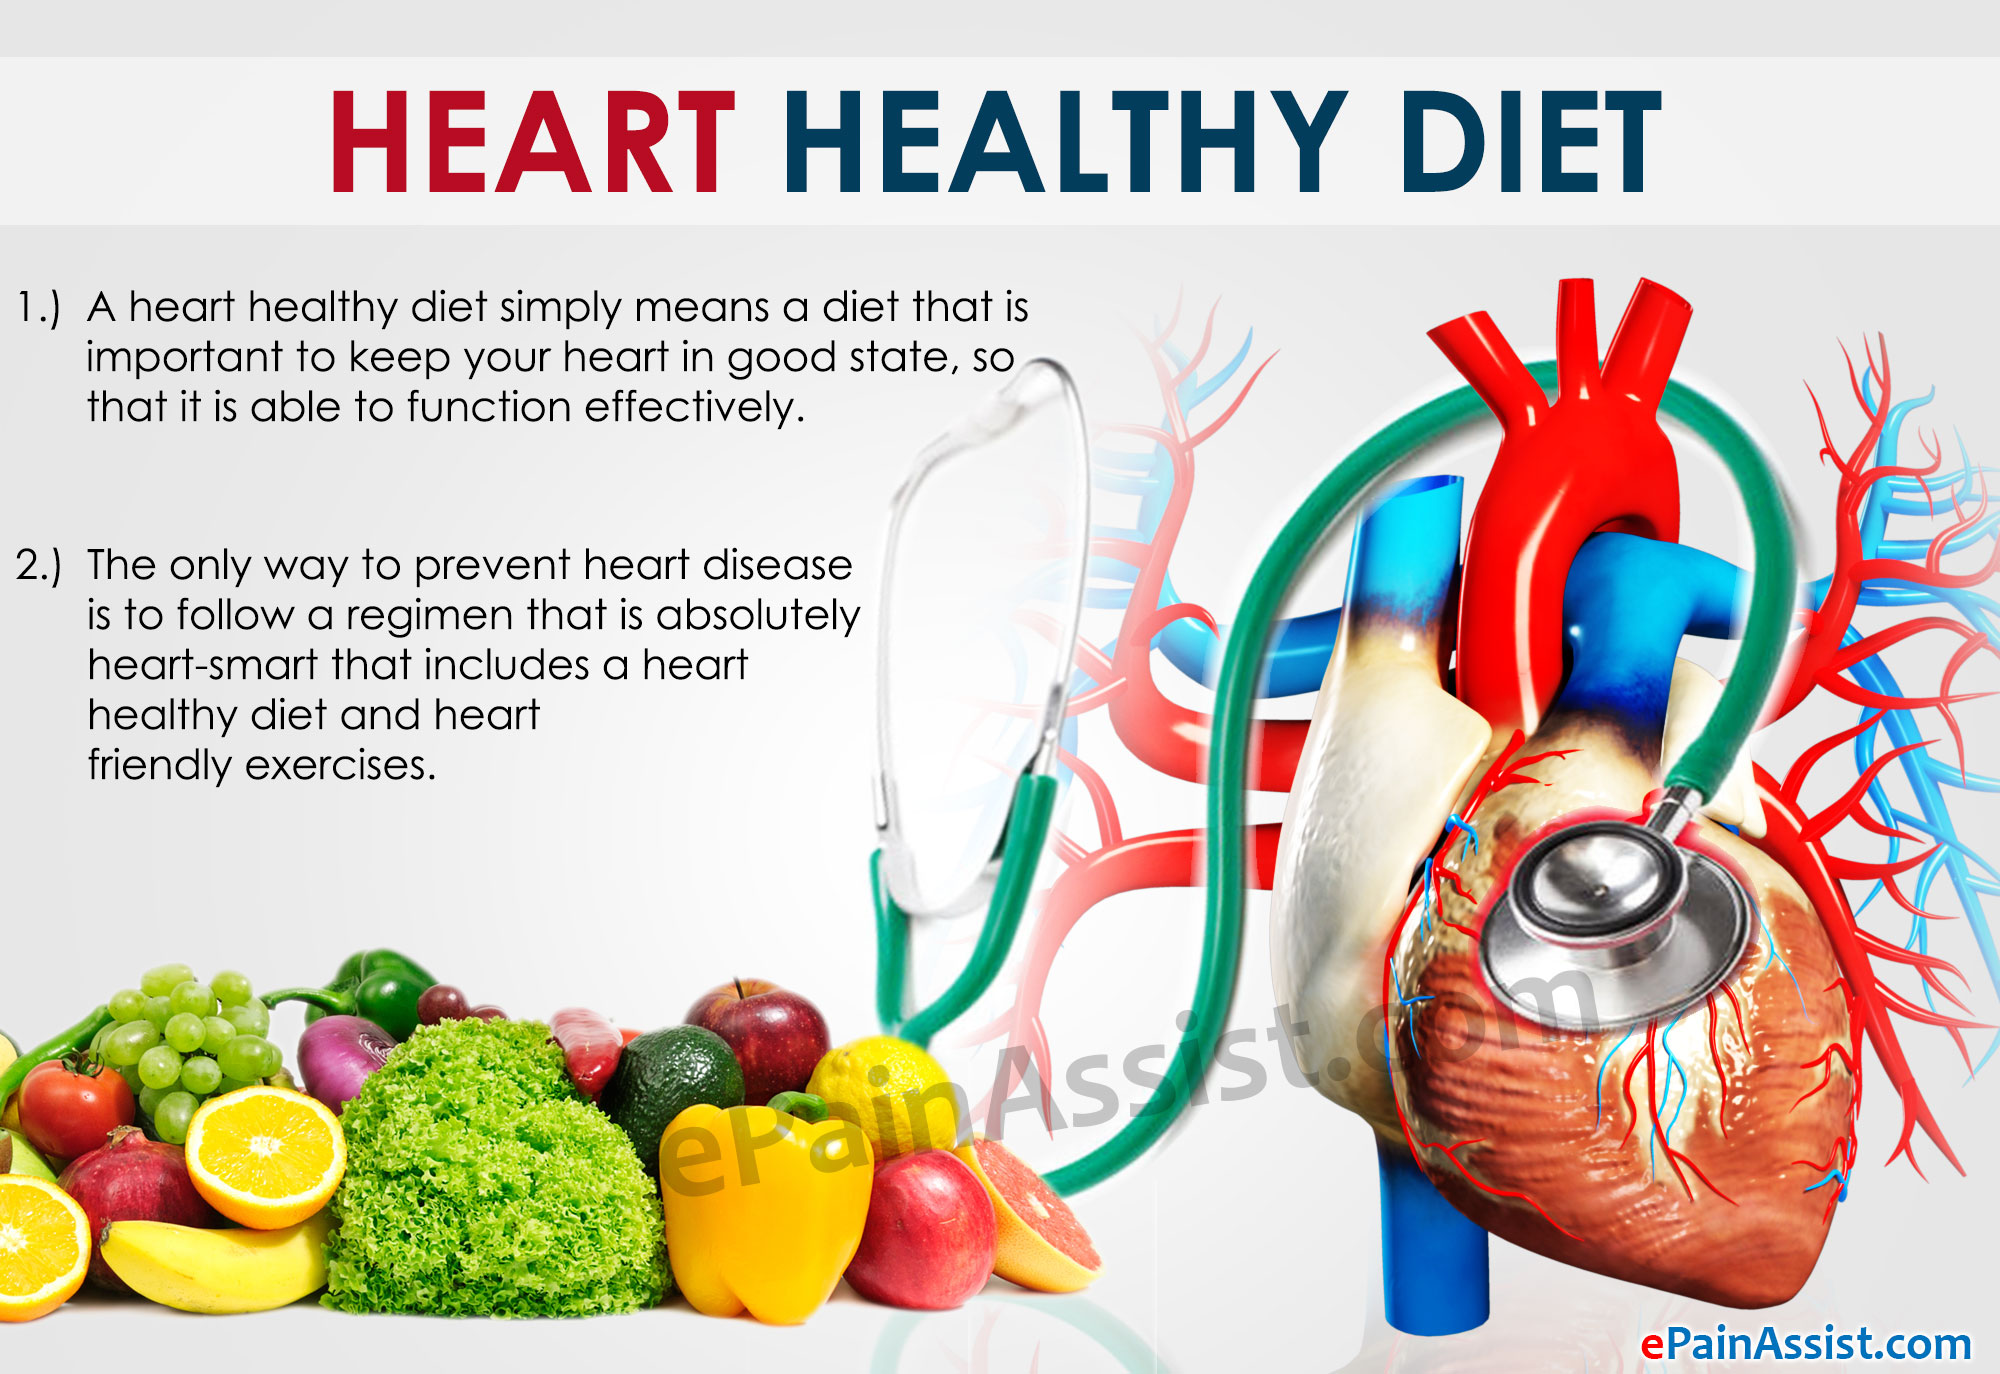 6 Steps to a Heart-Healthy Diet